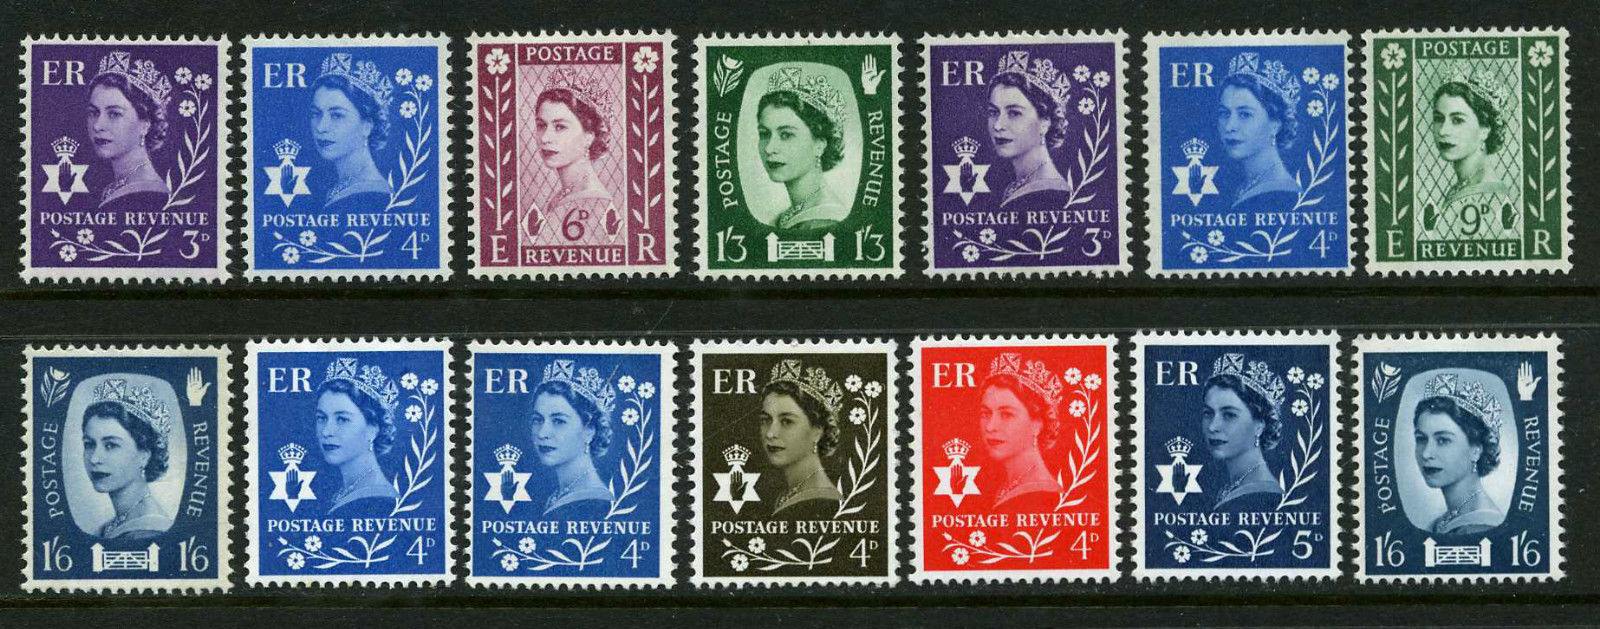 1958-70 GB - SGNI1-11 N. Ireland Regional Set (14) MNH